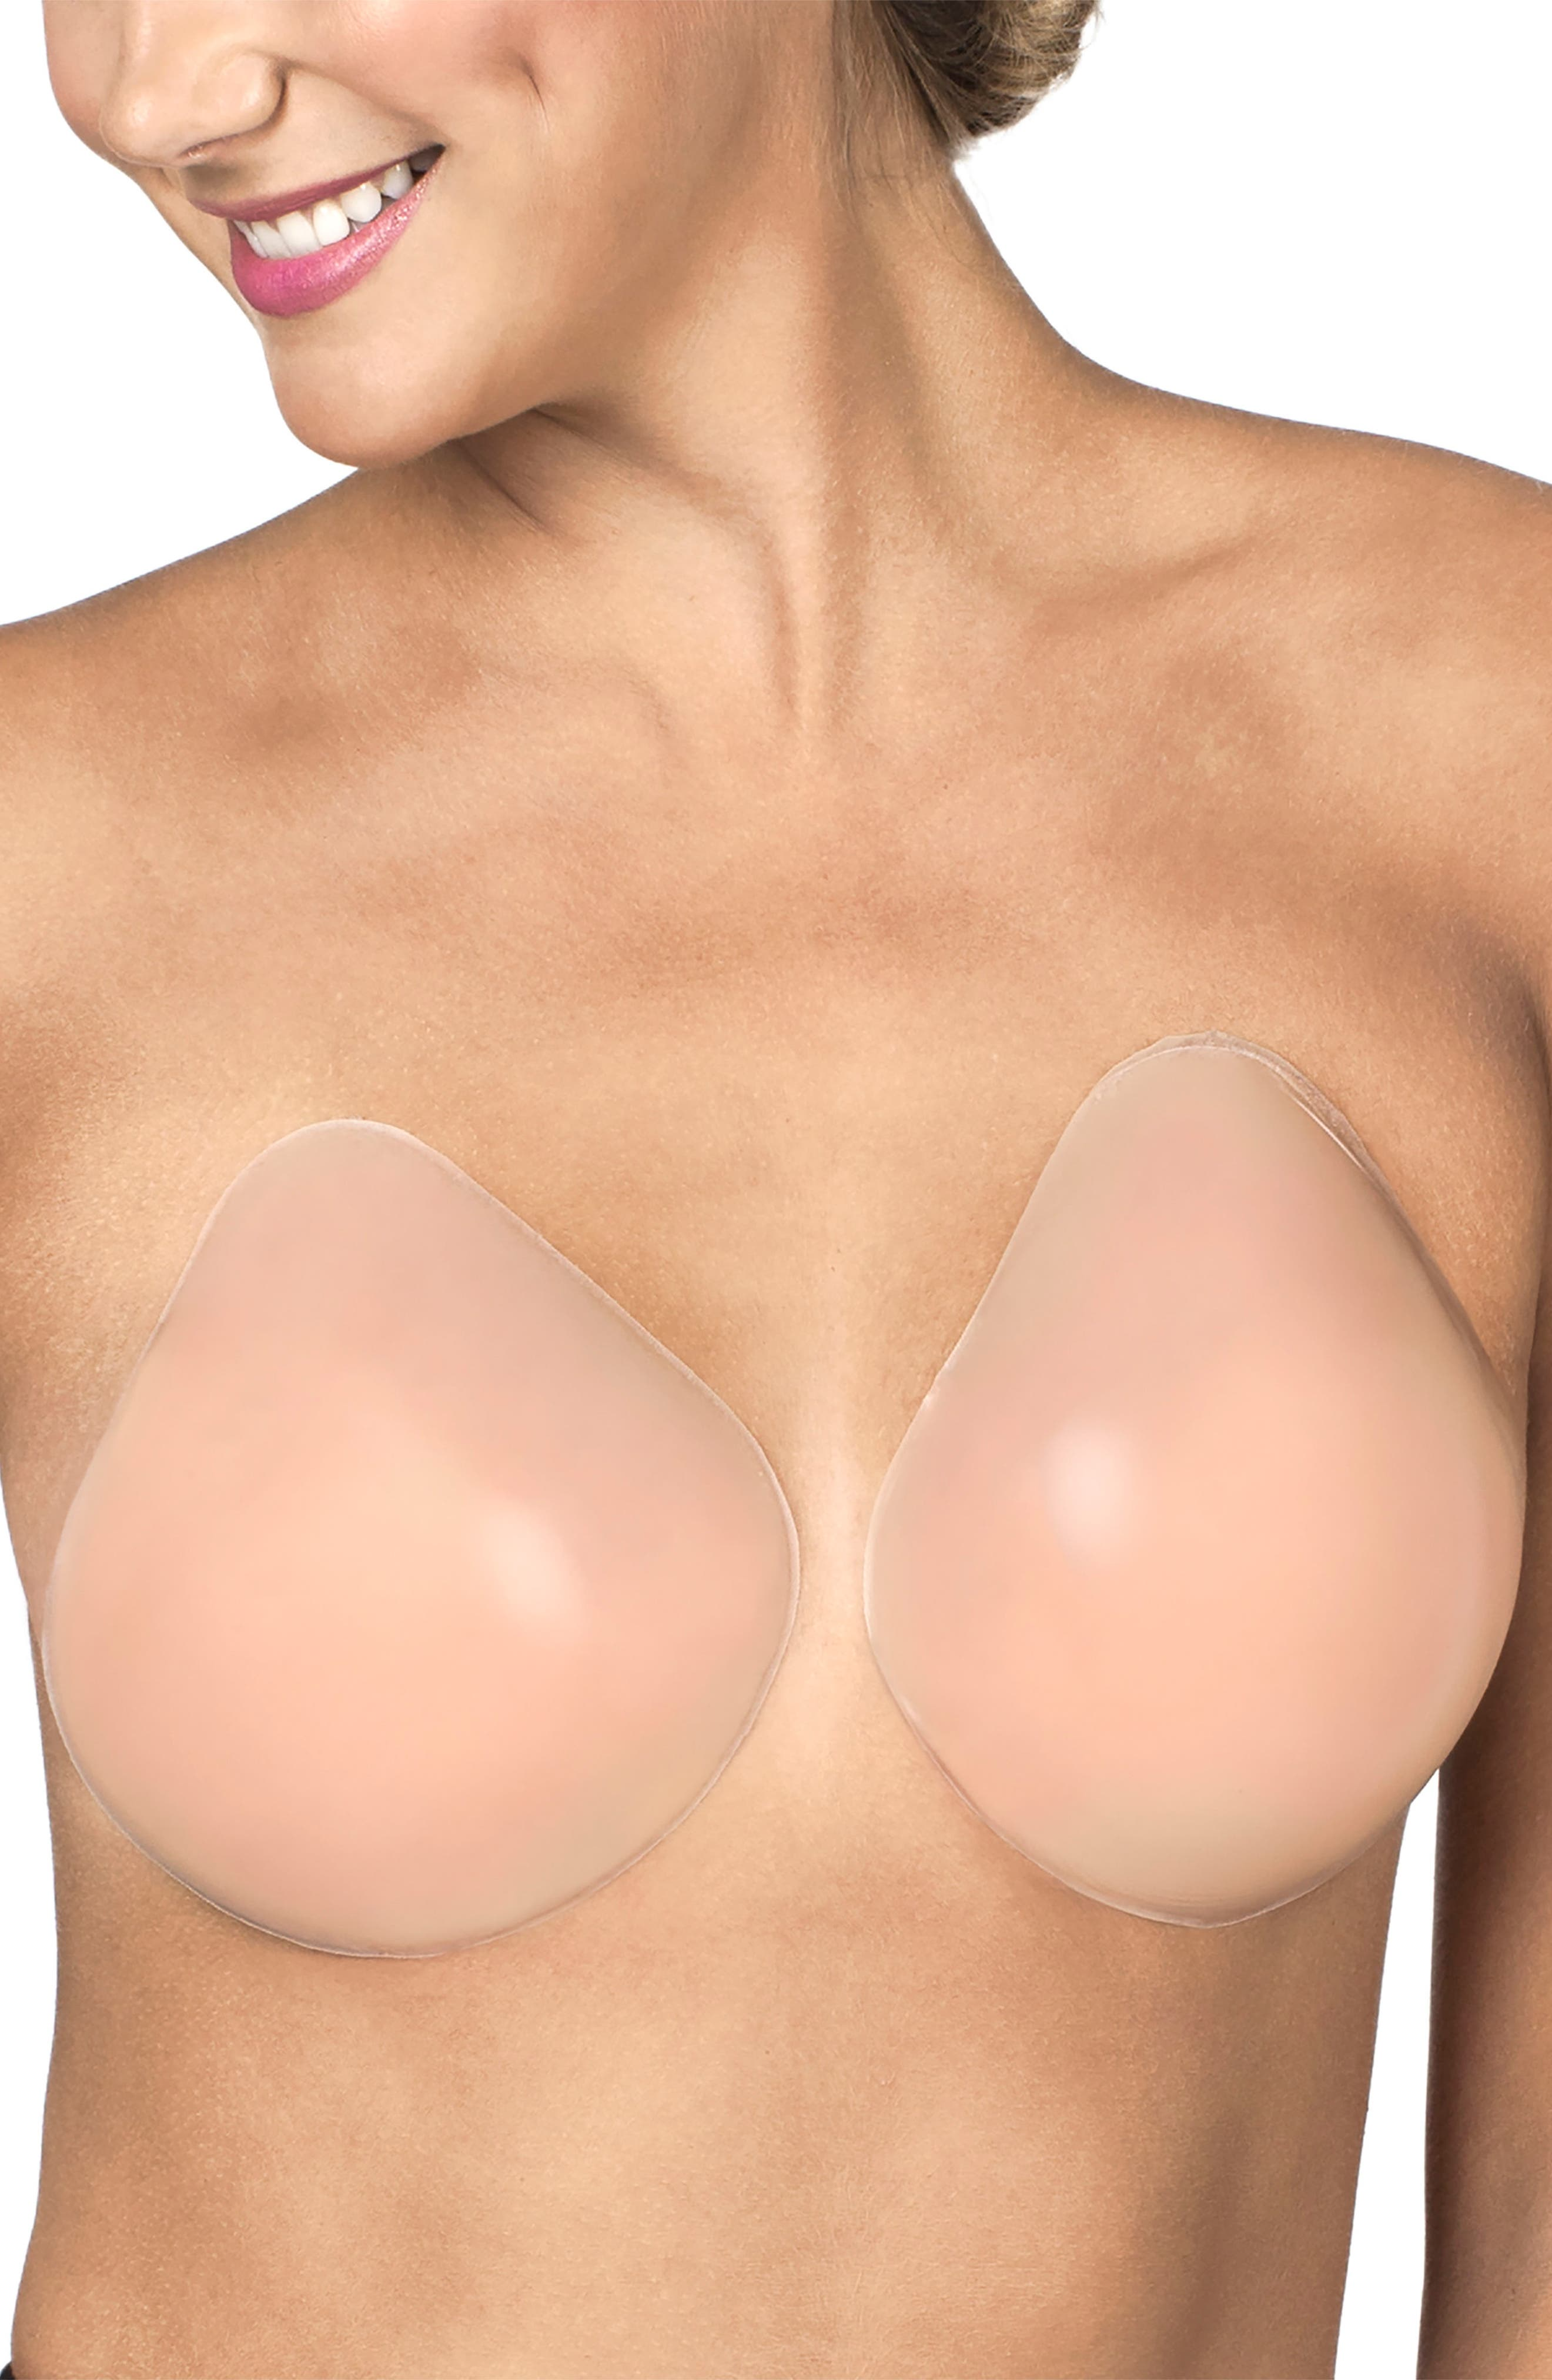 NORDSTROM LINGERIE Lift It Up Adhesive Silicone Bra, Main, color, NUDE